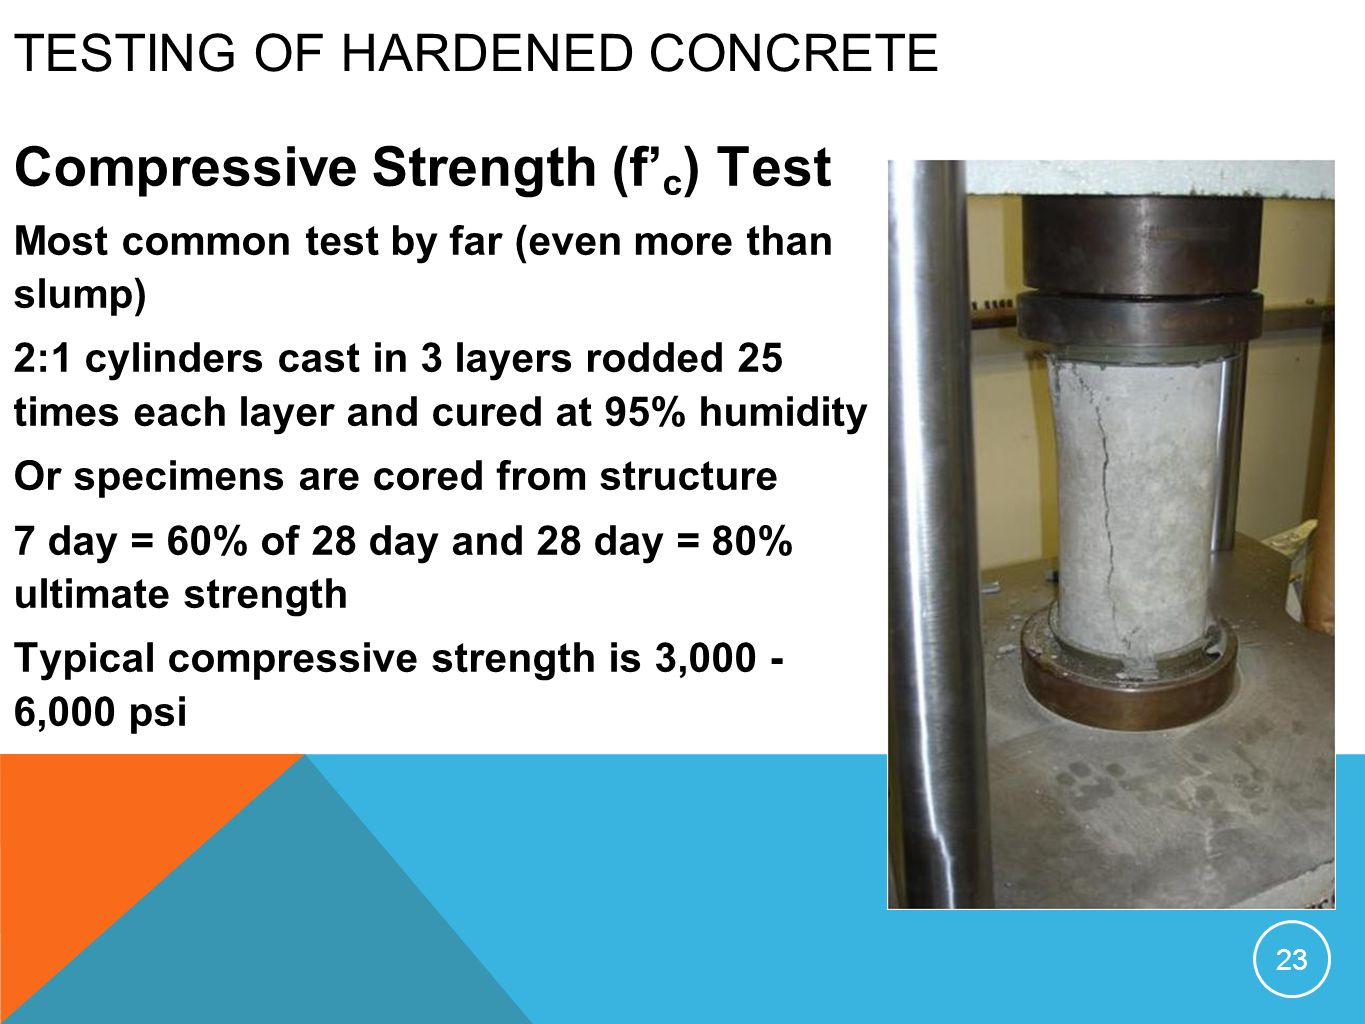 TESTING OF HARDENED CONCRETE Compressive Strength (f c ) Test Most common test by far (even more than slump) 2:1 cylinders cast in 3 layers rodded 25